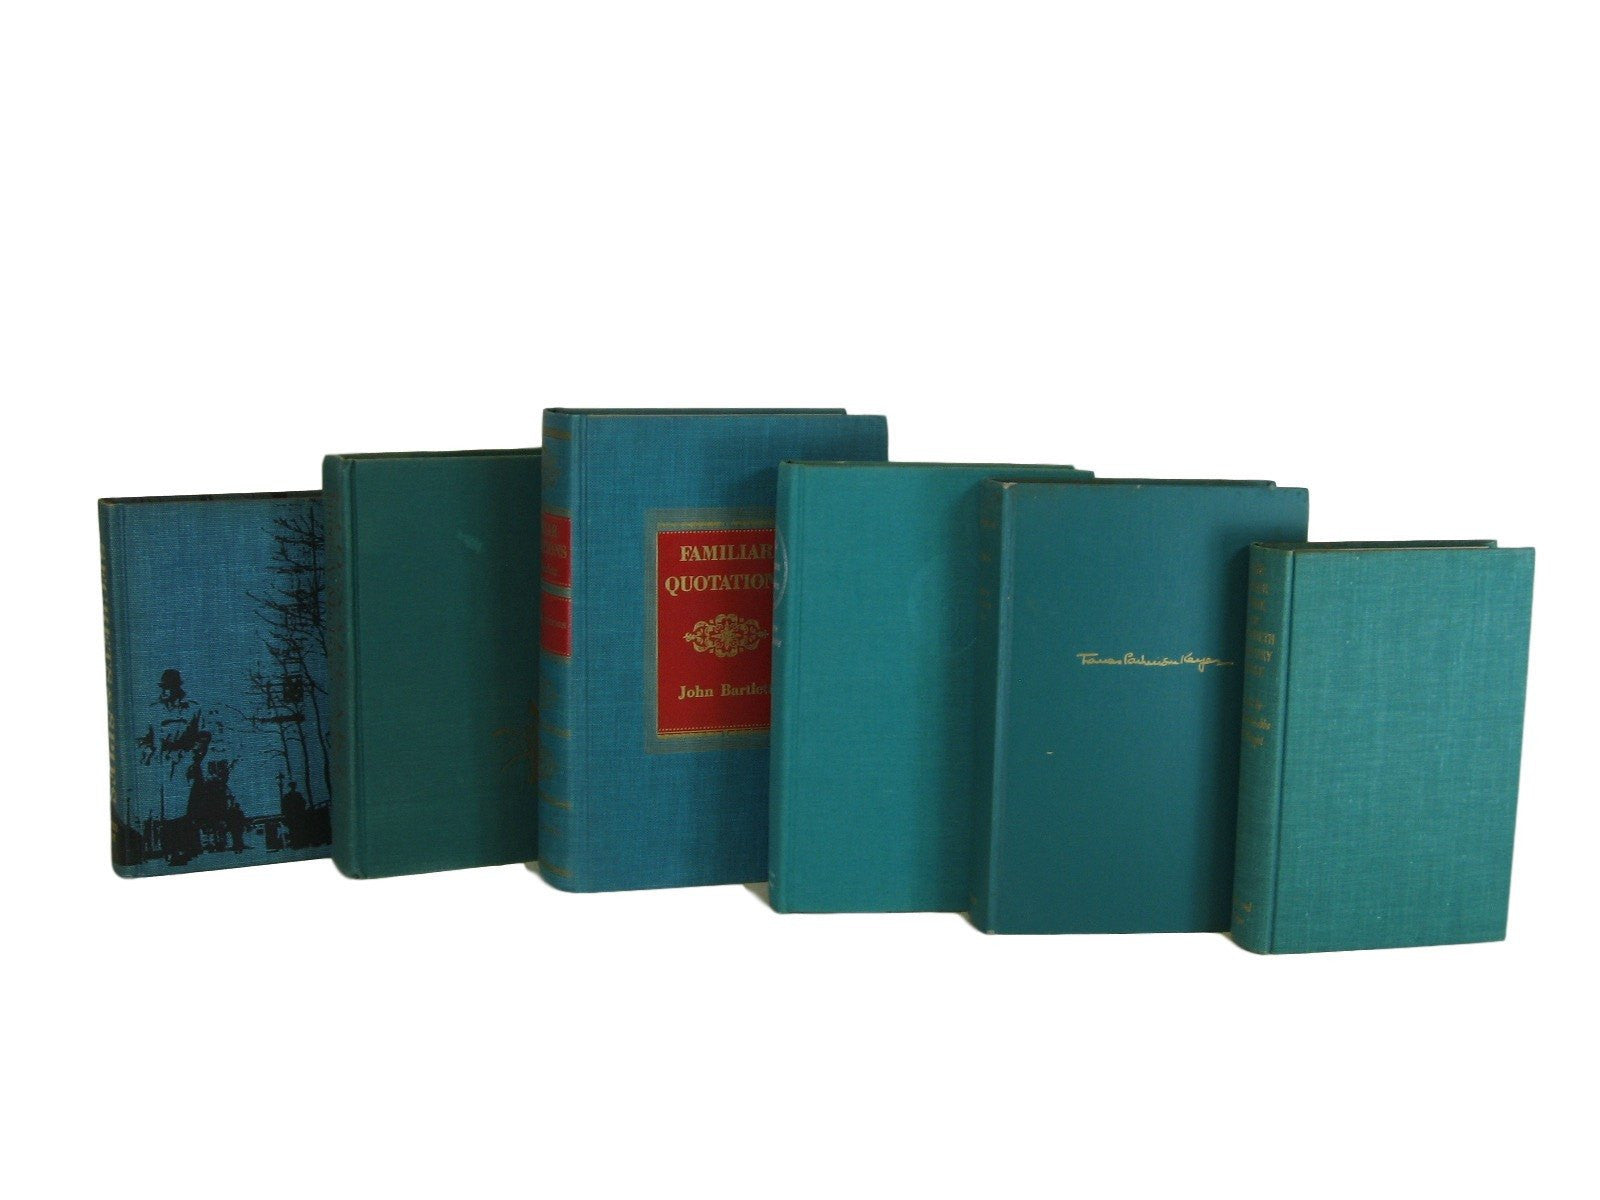 Green Vintage Books for Home Decor, S/6 - Decades of Vintage